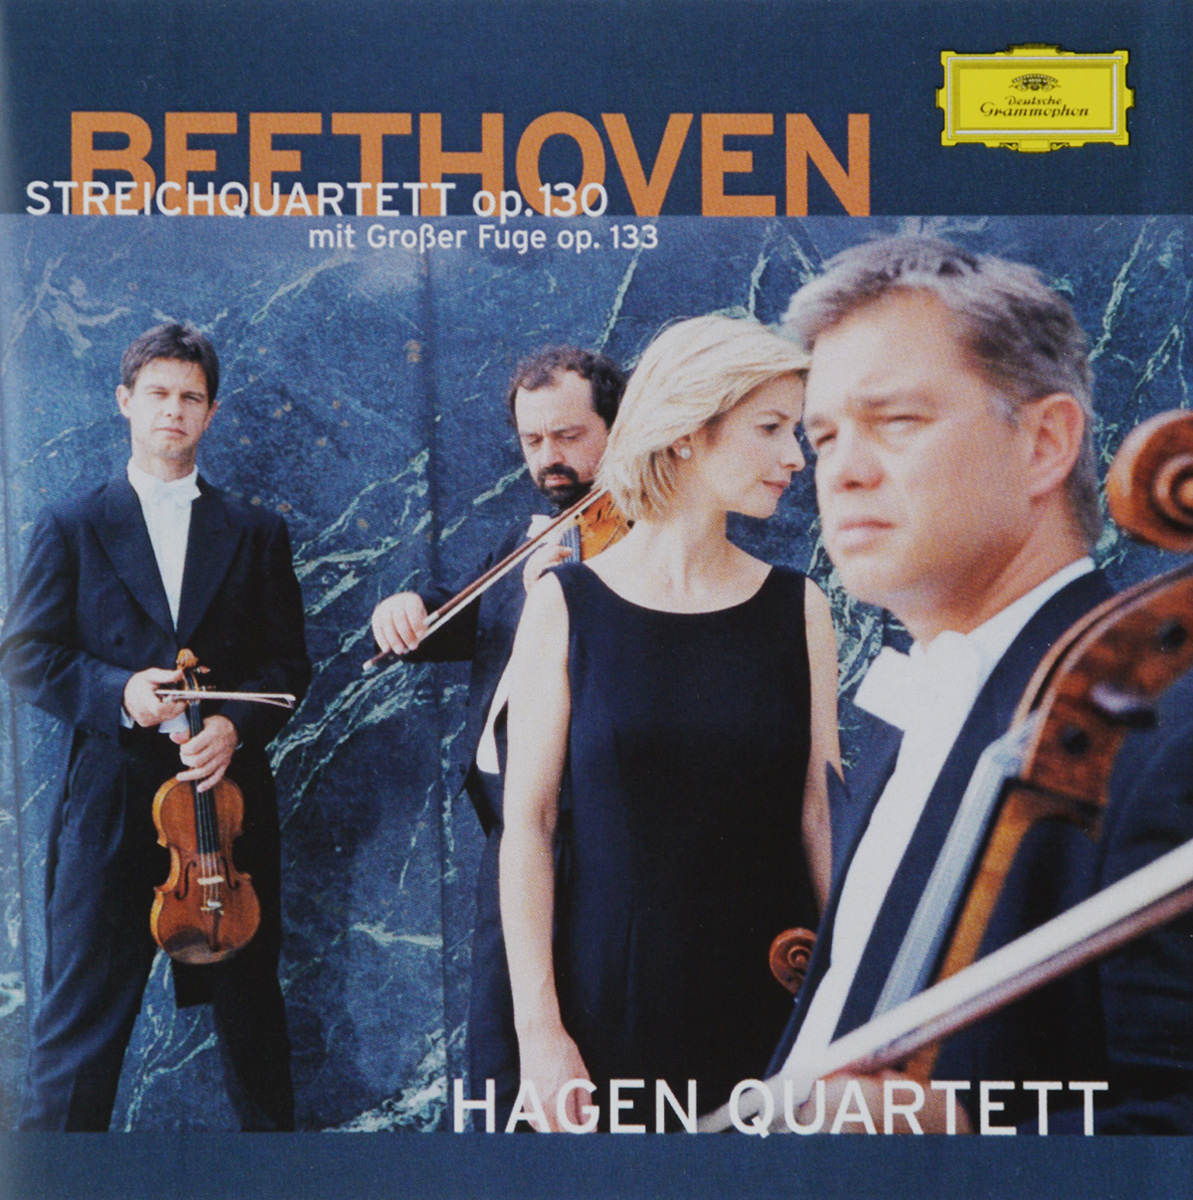 HAGEN QUARTETT. BEETHOVEN: OP. 130, OP. 133 6av6 642 0dc01 1ax0 op 177b key panel 90 days warranty